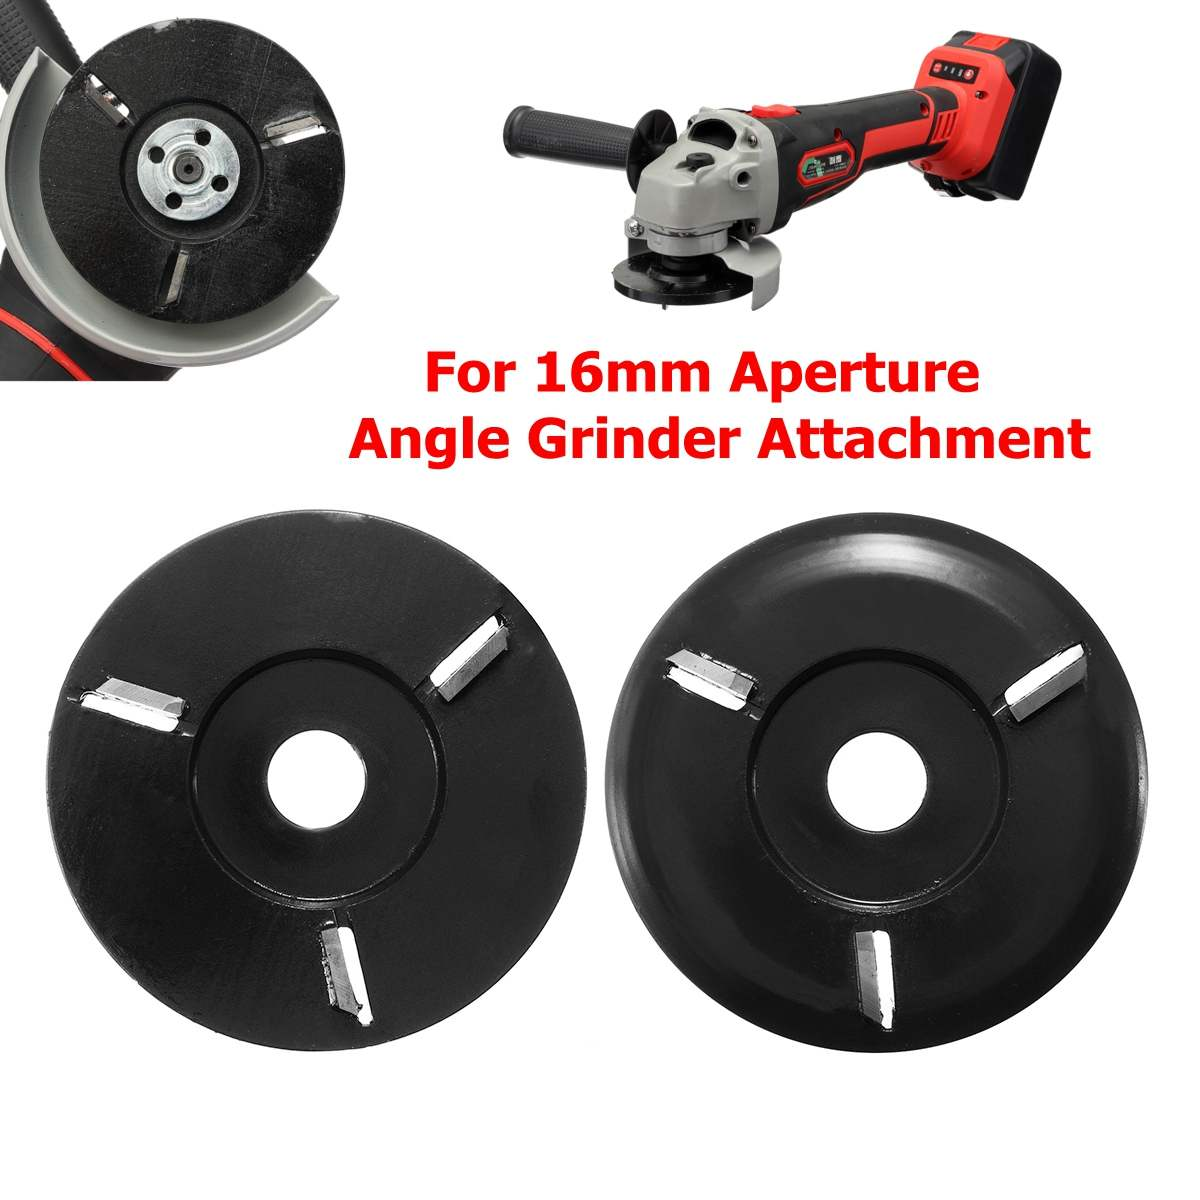 US $16 66 46% OFF|Power Wood Carving Disc Angle Grinder Woodworking Turbo  Plane For 16mm Aperture Angle Grinder Attachment Milling Cutter-in Grinders